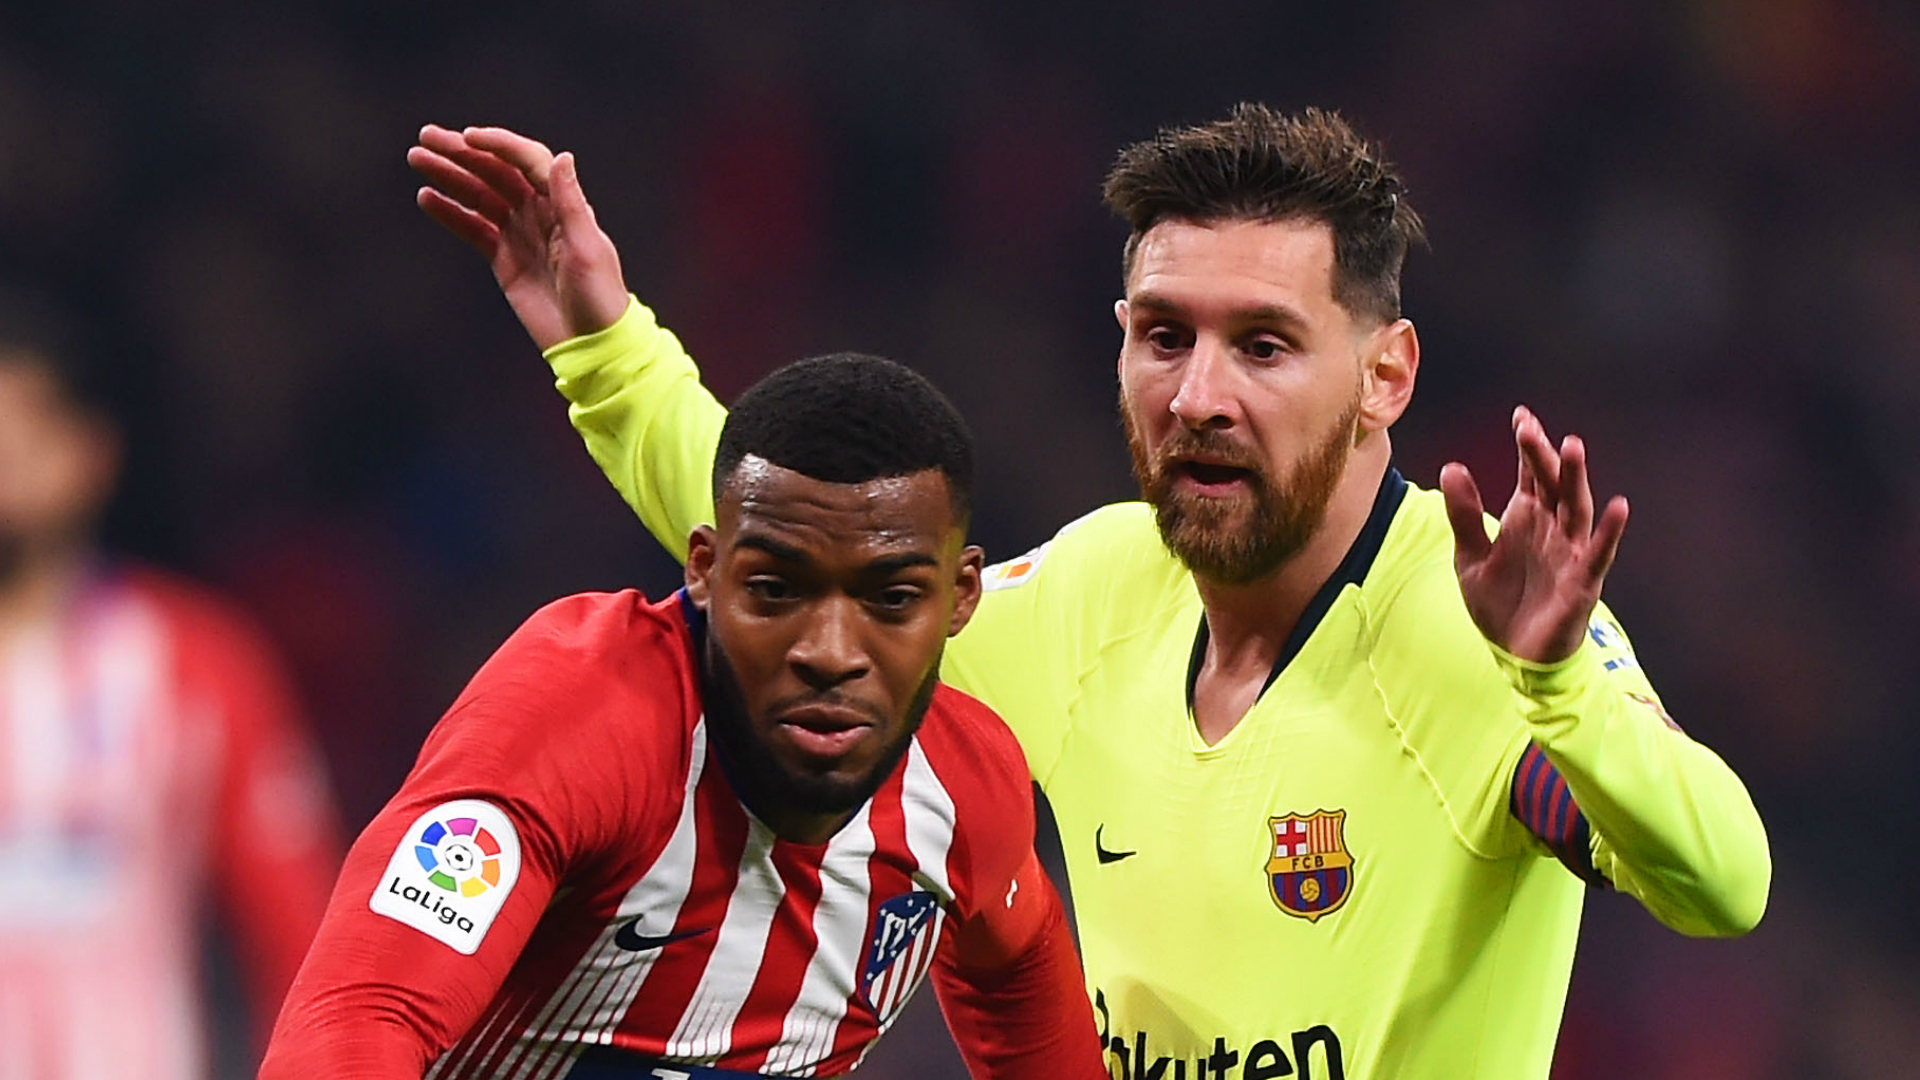 atletico madrid 1 barcelona 1 dembele earns point in top of the